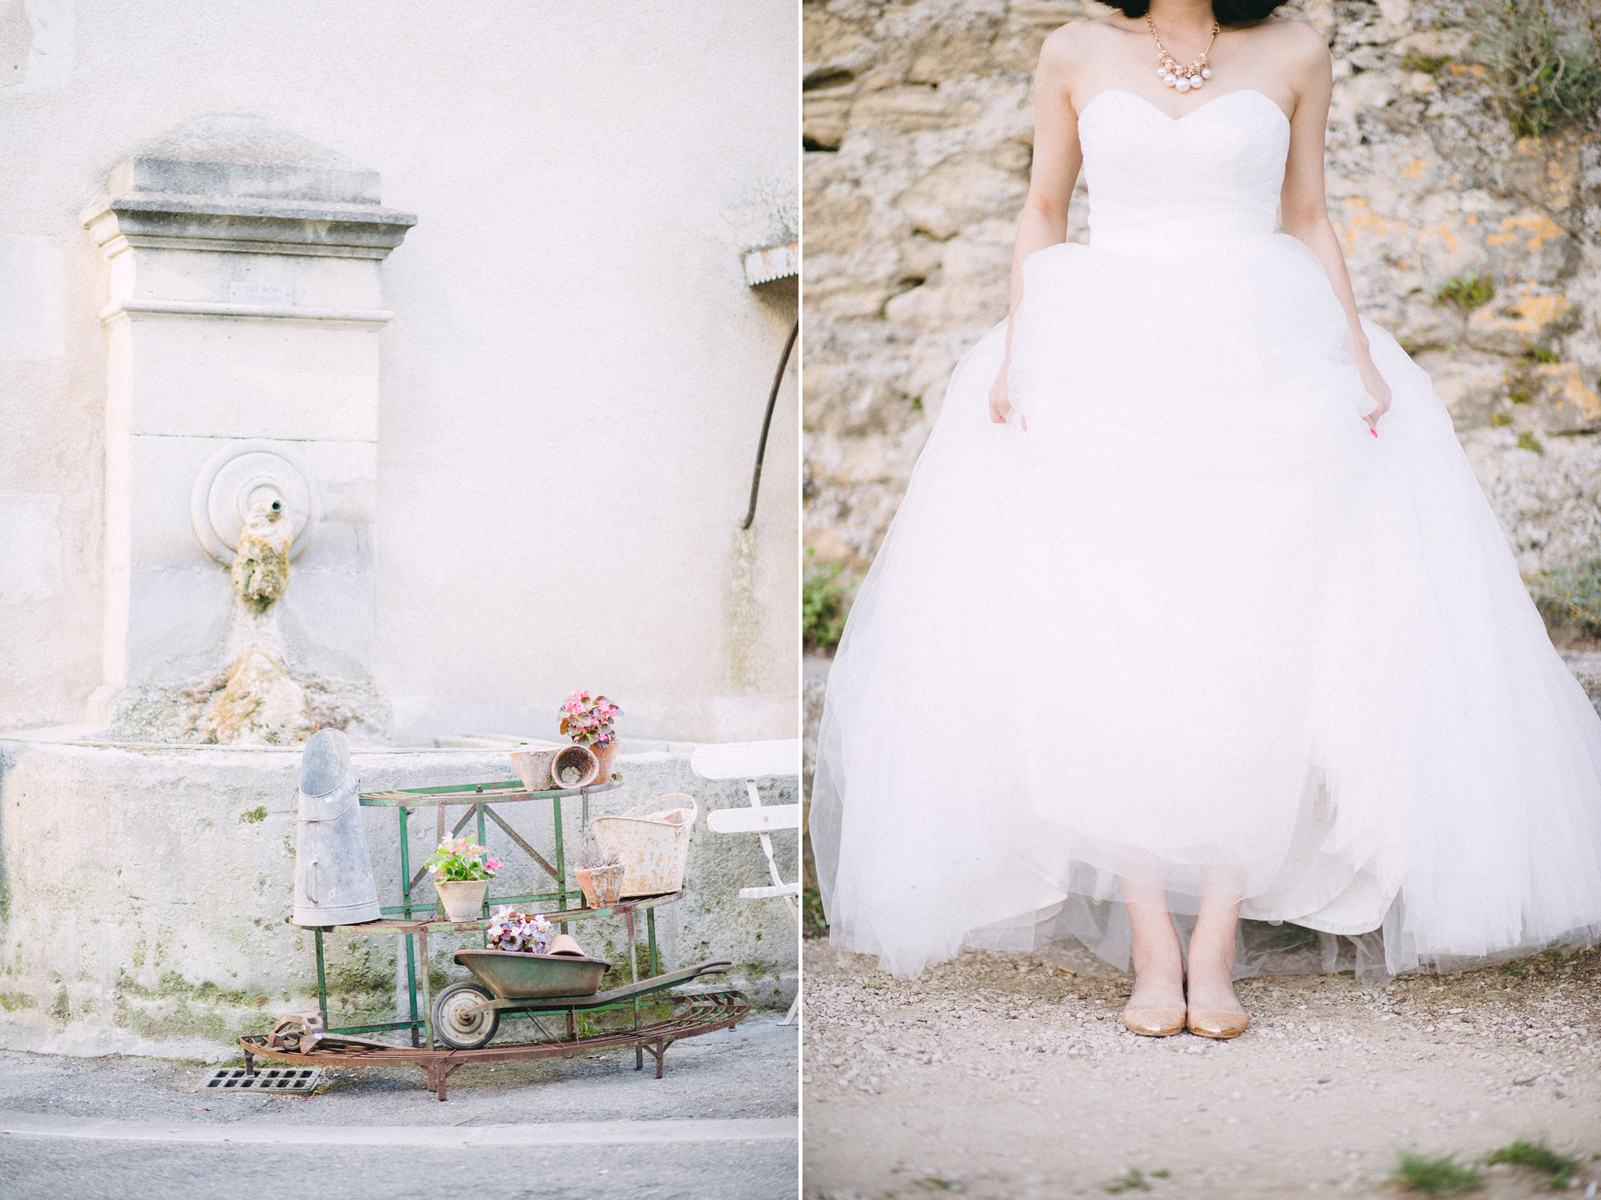 Boheme-Moon-Wedding-Photography-Taiwan-Pre-Wedding-Provence_12.jpg